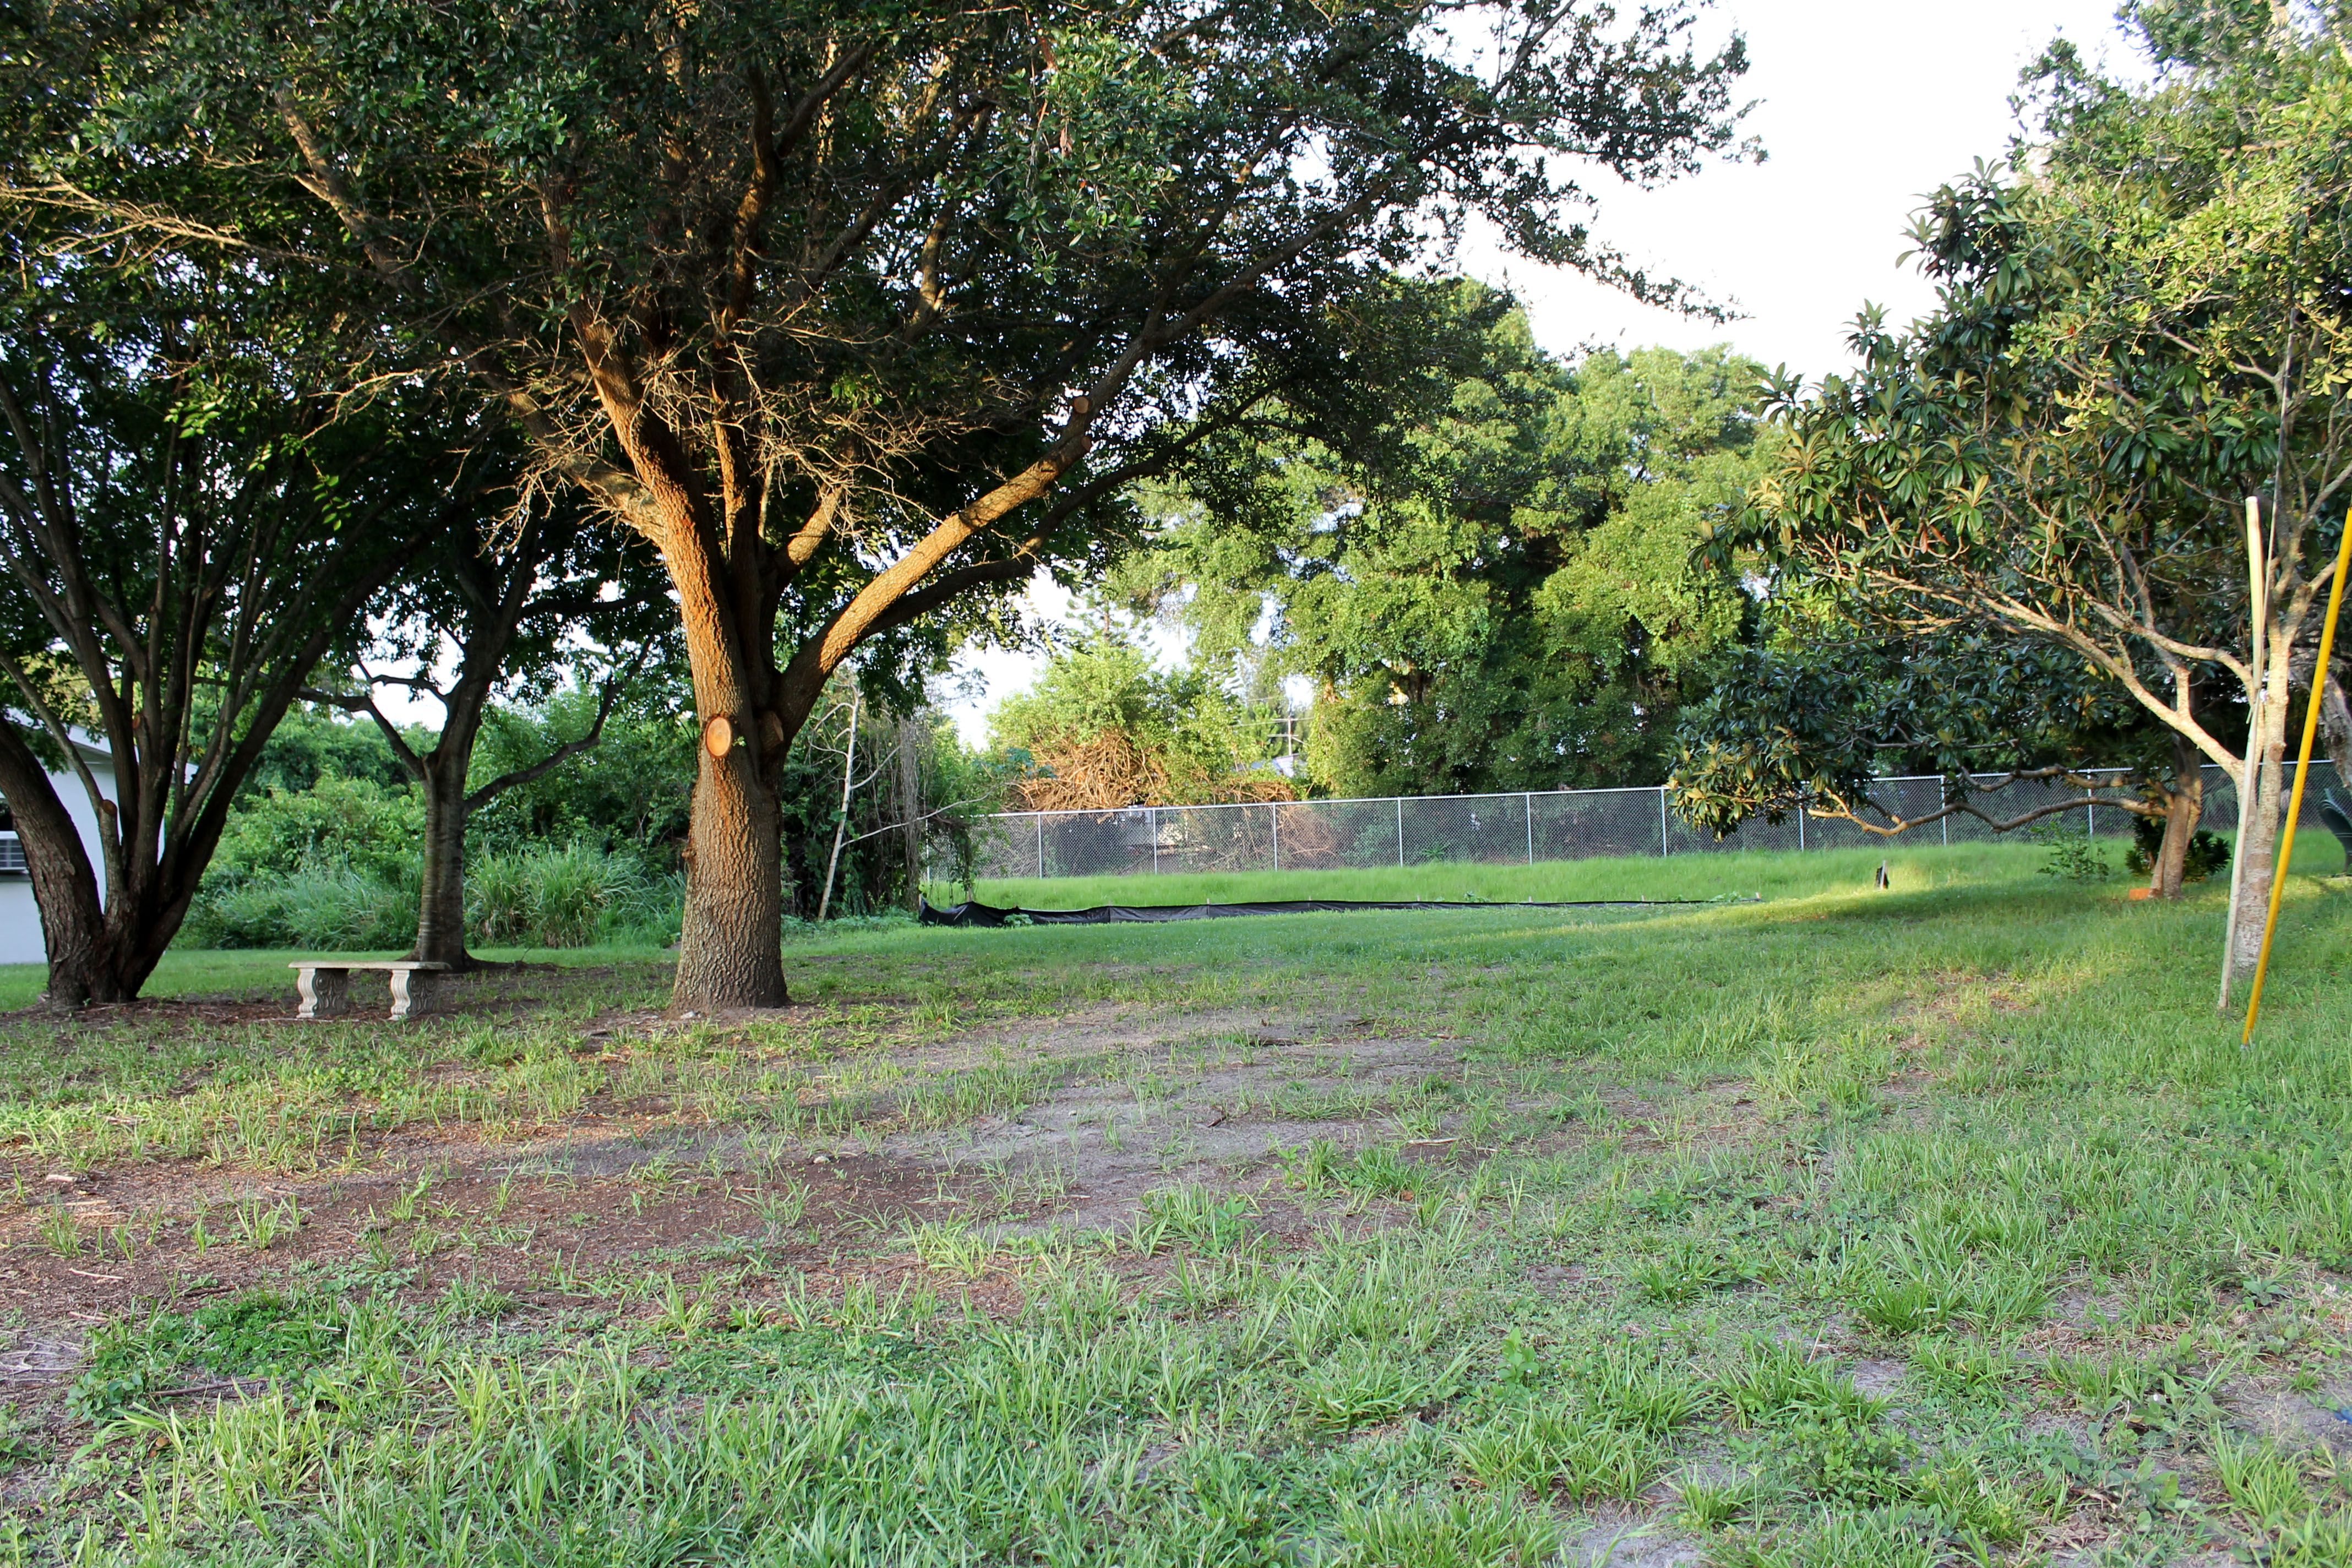 Open green space in Barbara Circle Park with trees and a concrete bench in the background